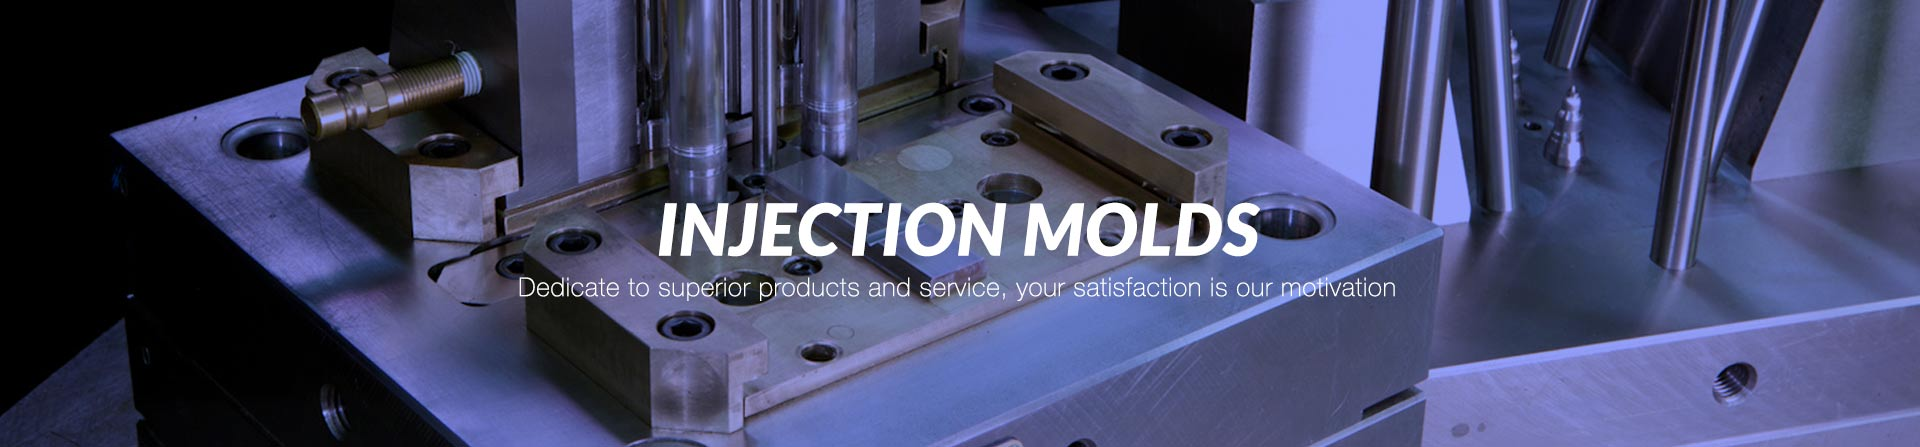 complex injection molds